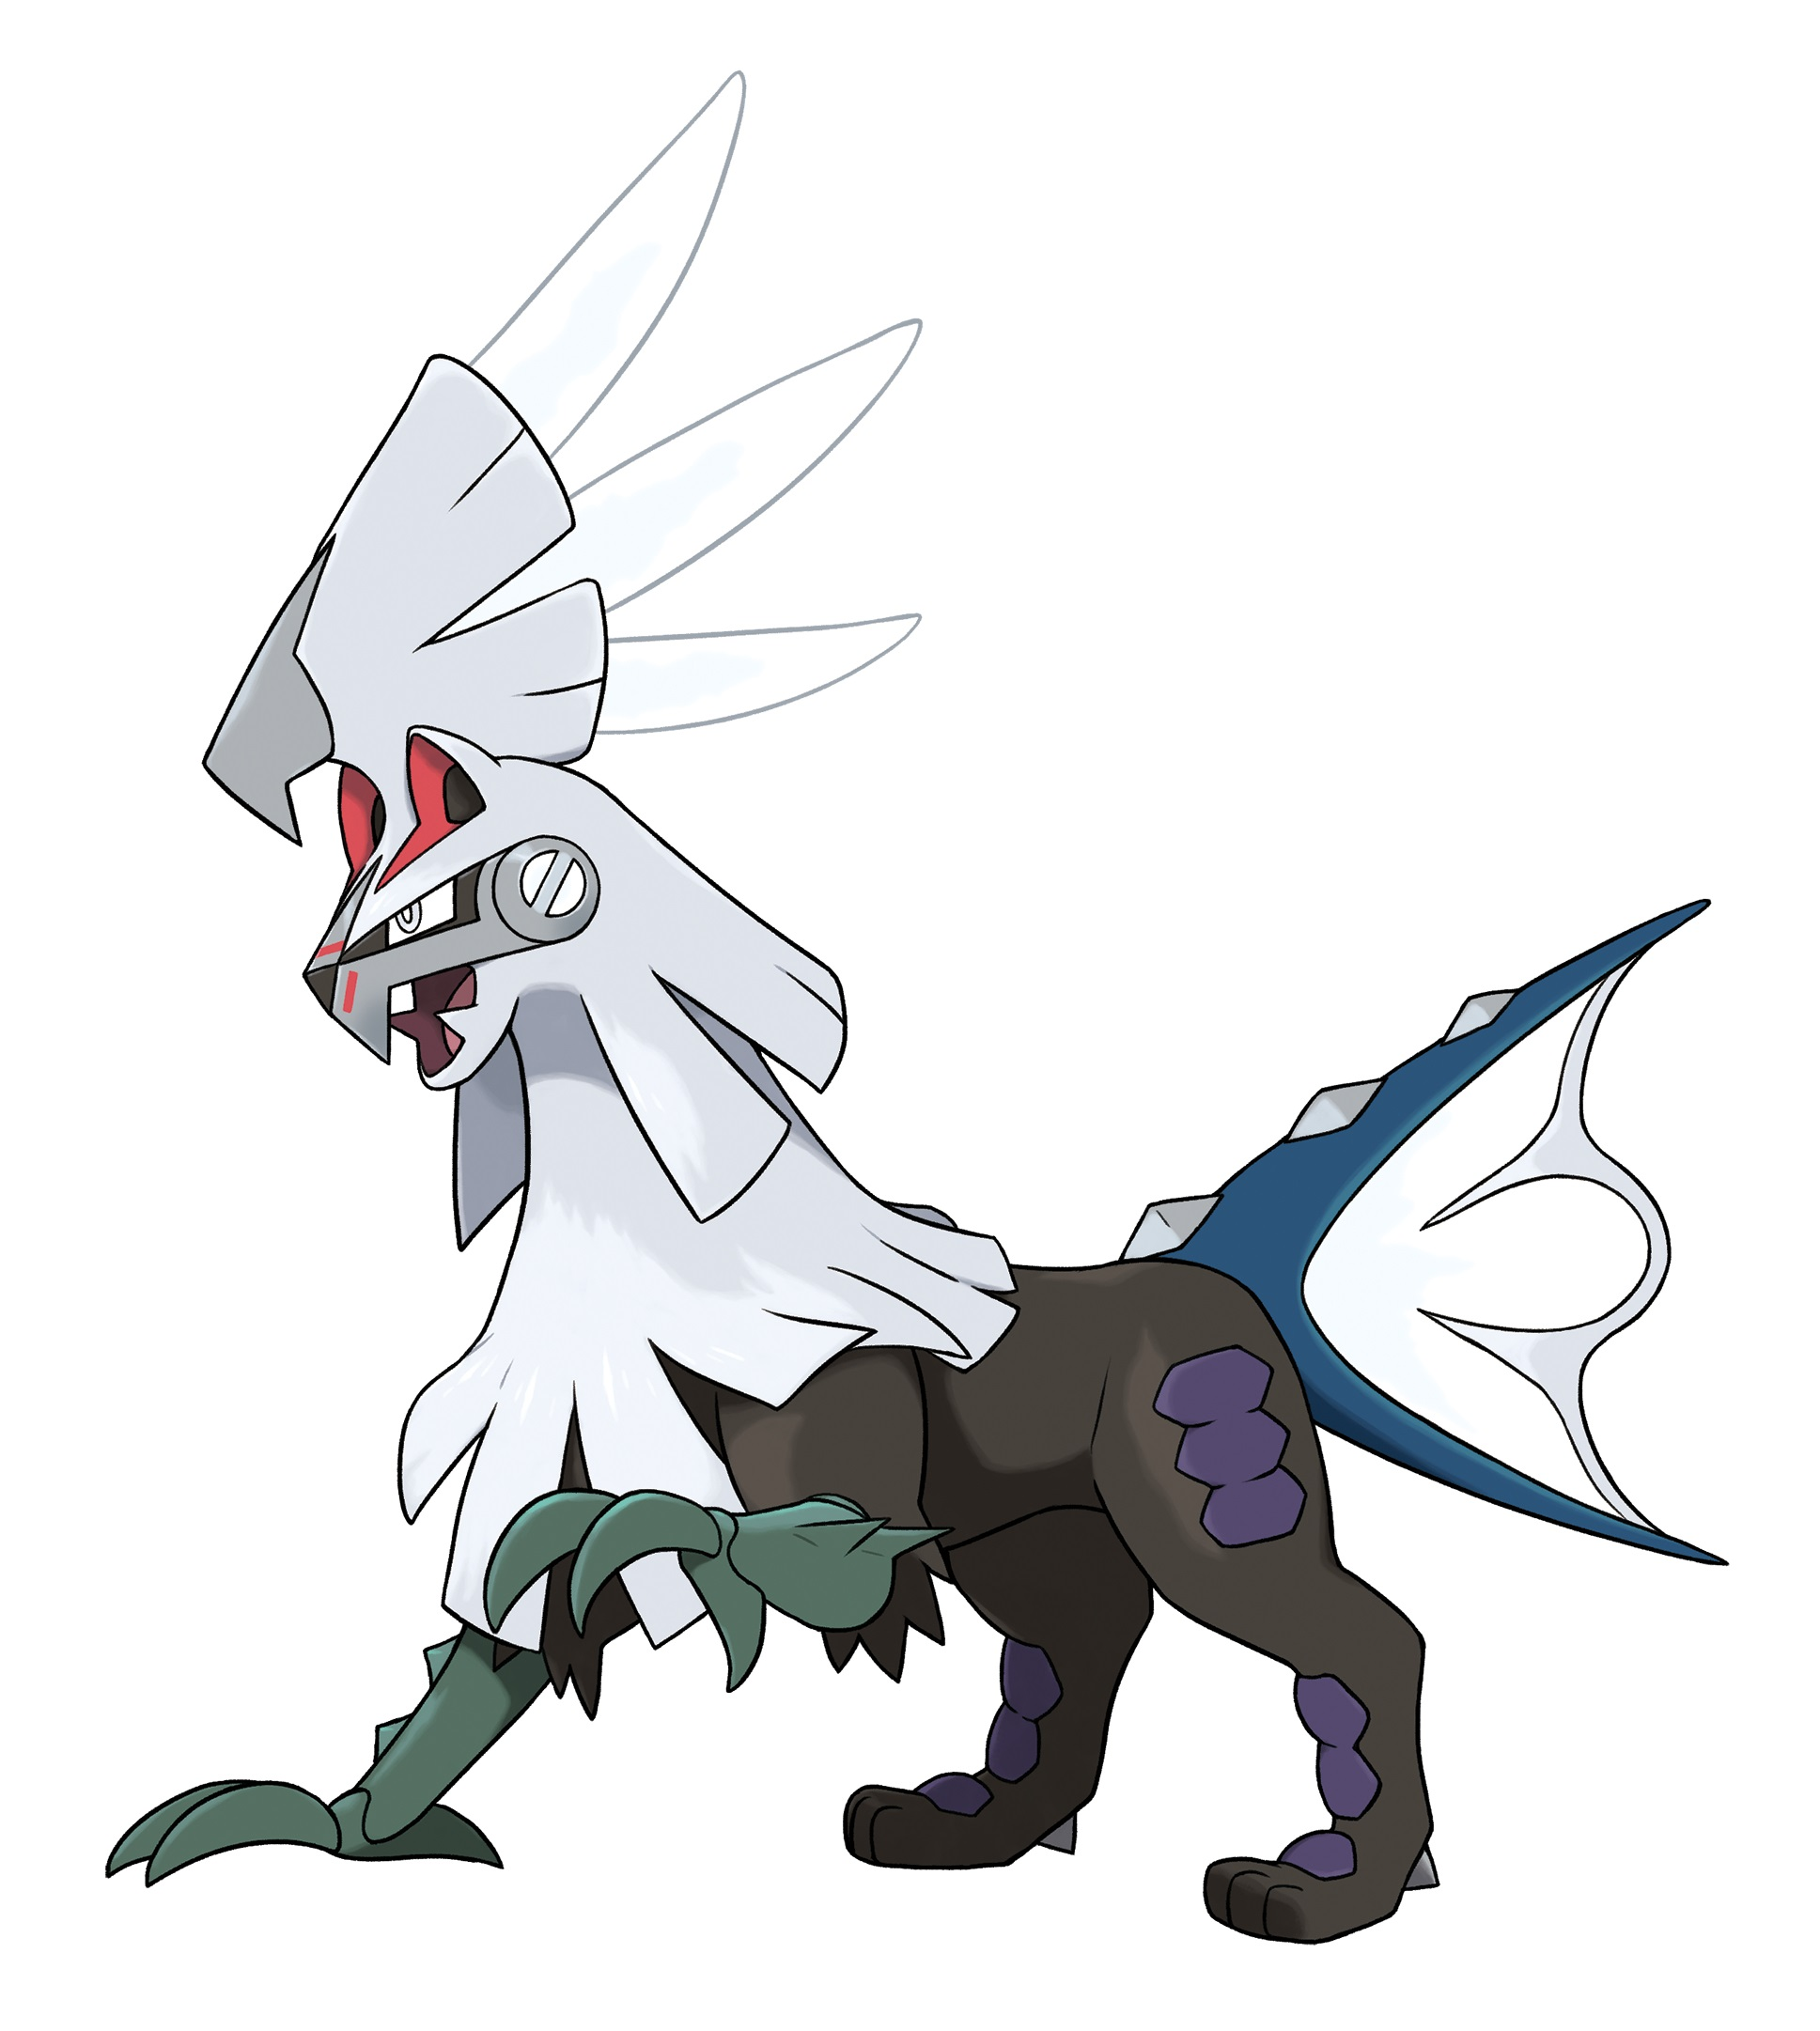 Silvally_RGB_300dpi